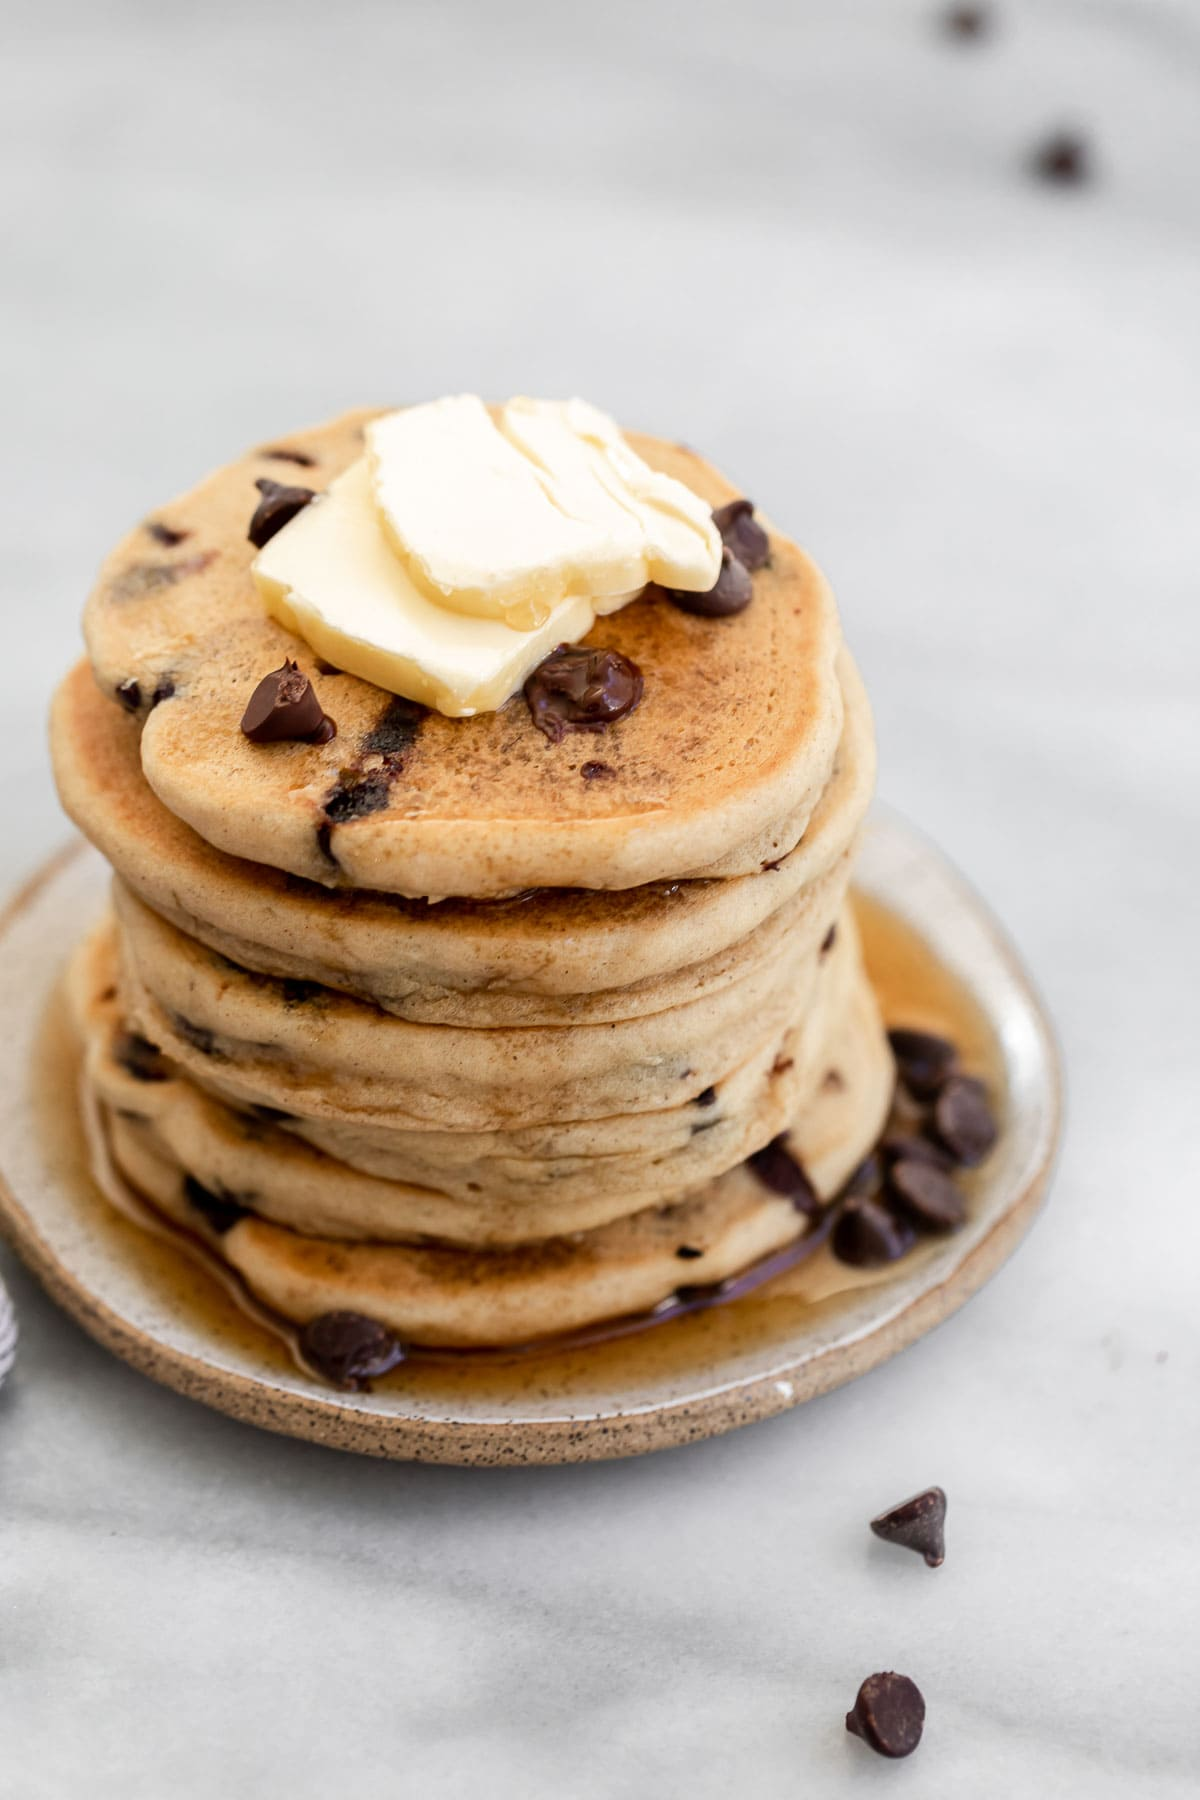 Tall stack of chocolate chip pancakes on a plate